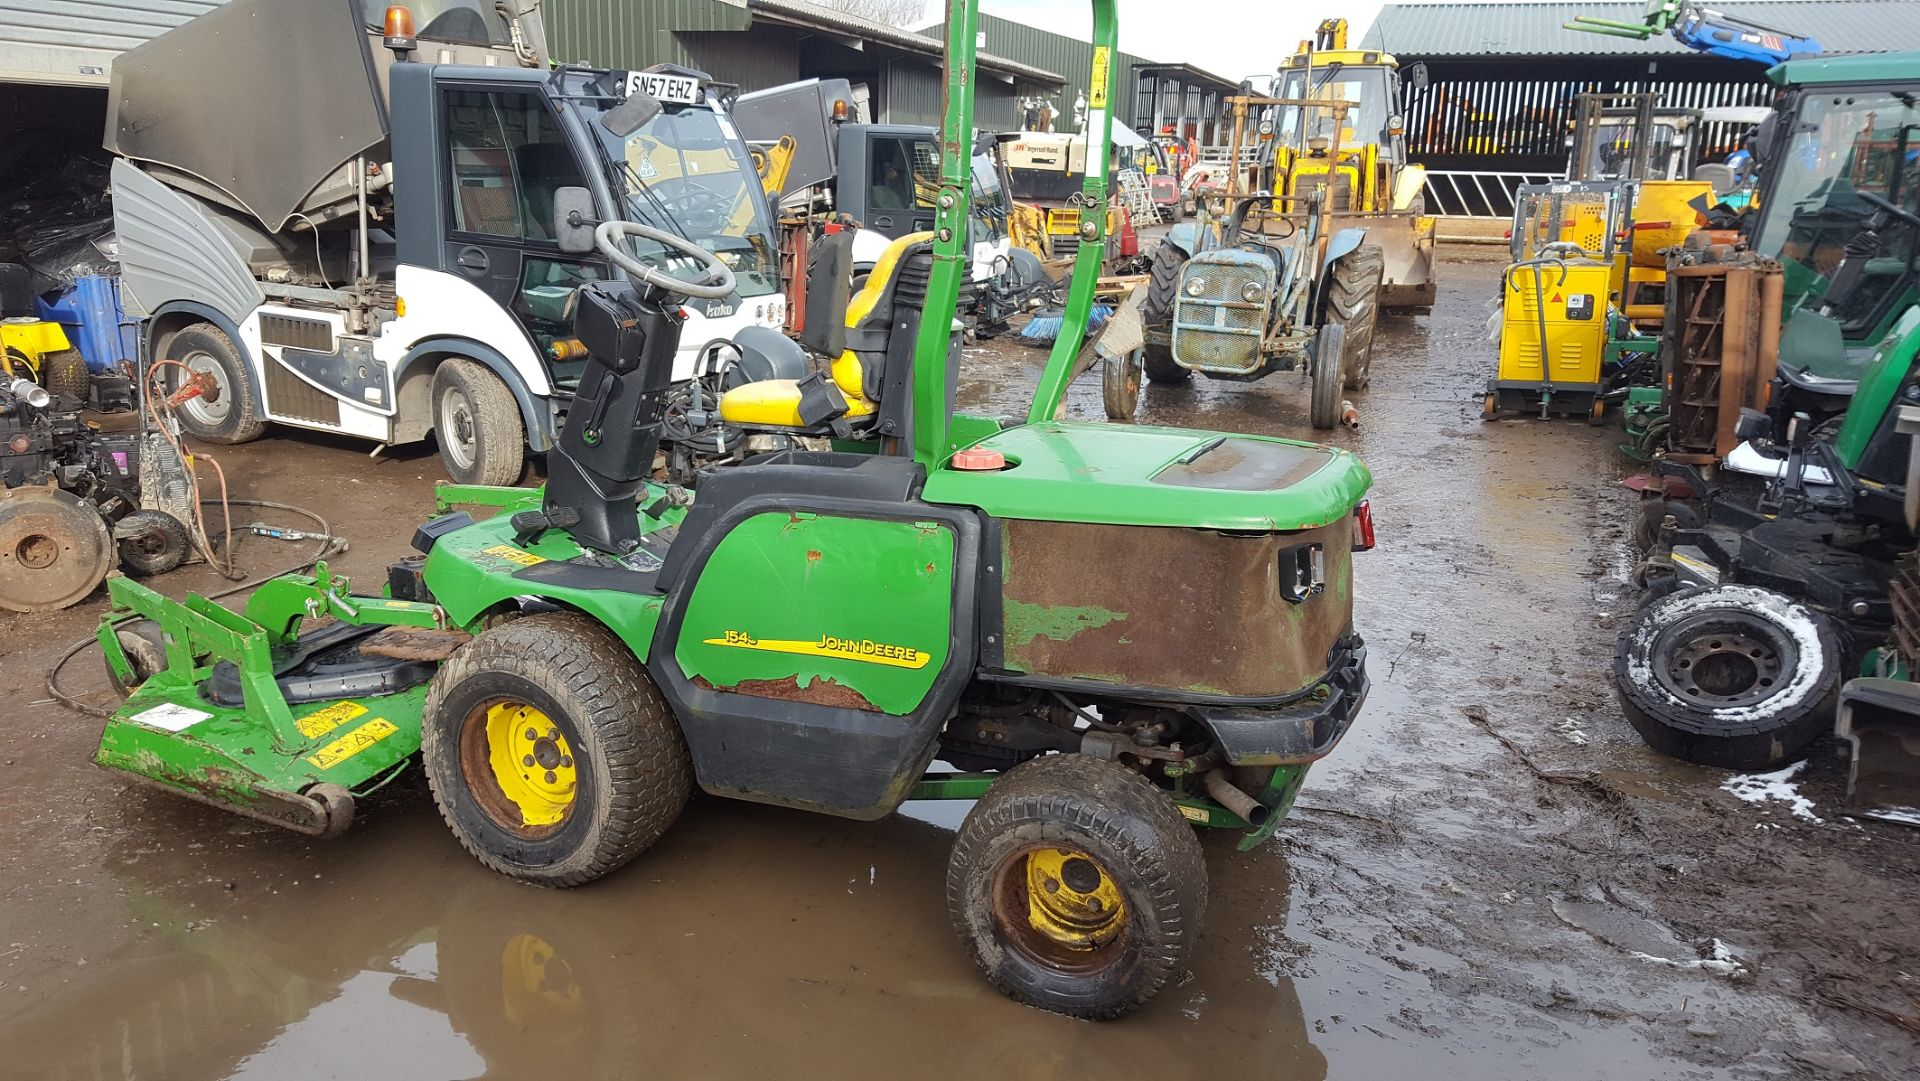 2006 JOHN DEERE 1545 RIDE ON LAWN MOWER, EX GATESHEAD COUNCIL *PLUS VAT* - Image 2 of 8